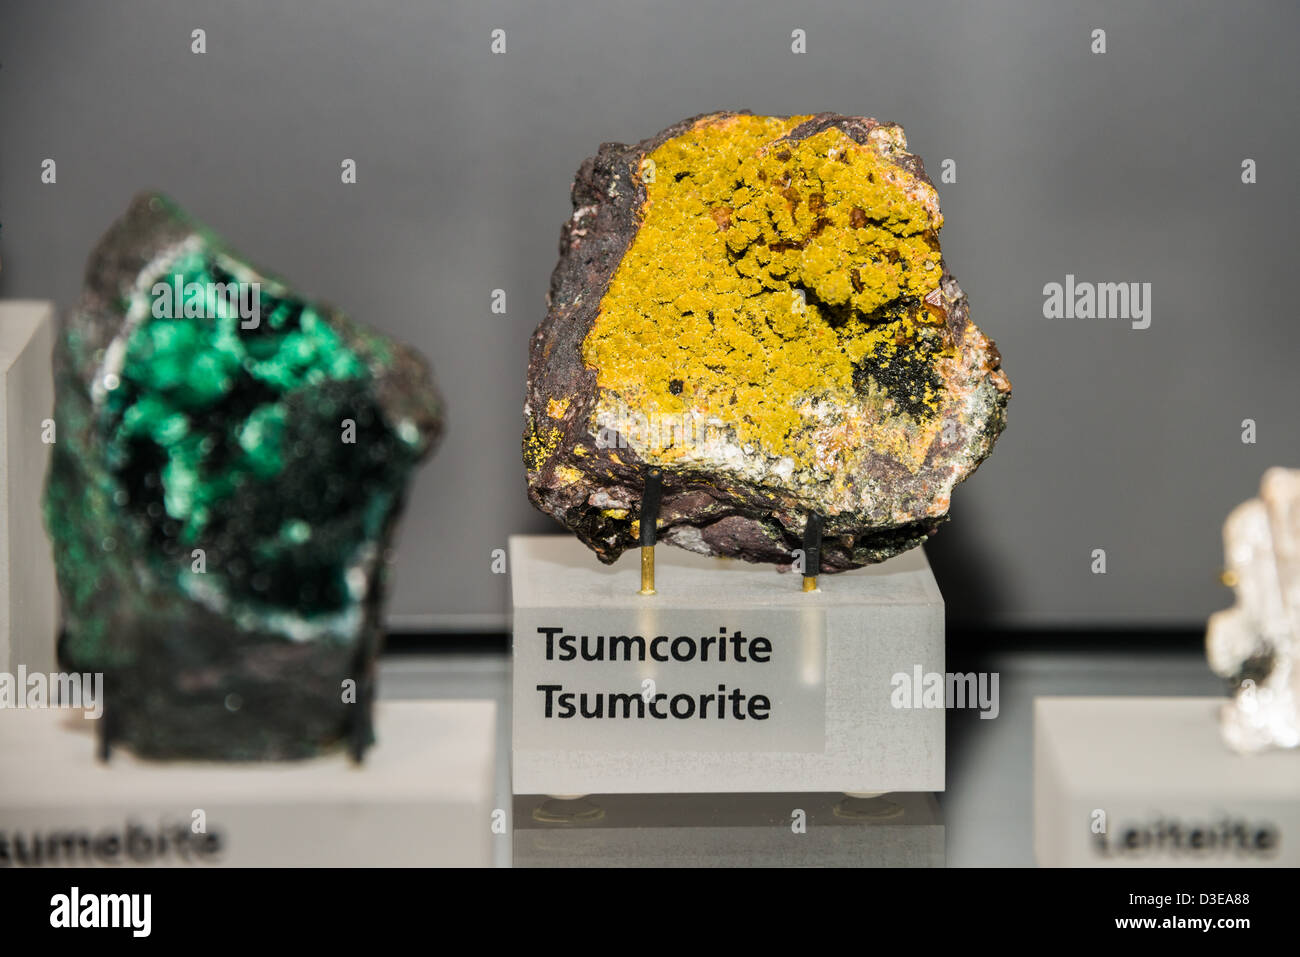 Mineral Exhibition at the Royal Ontario Museum, Toronto, Canada. - Stock Image